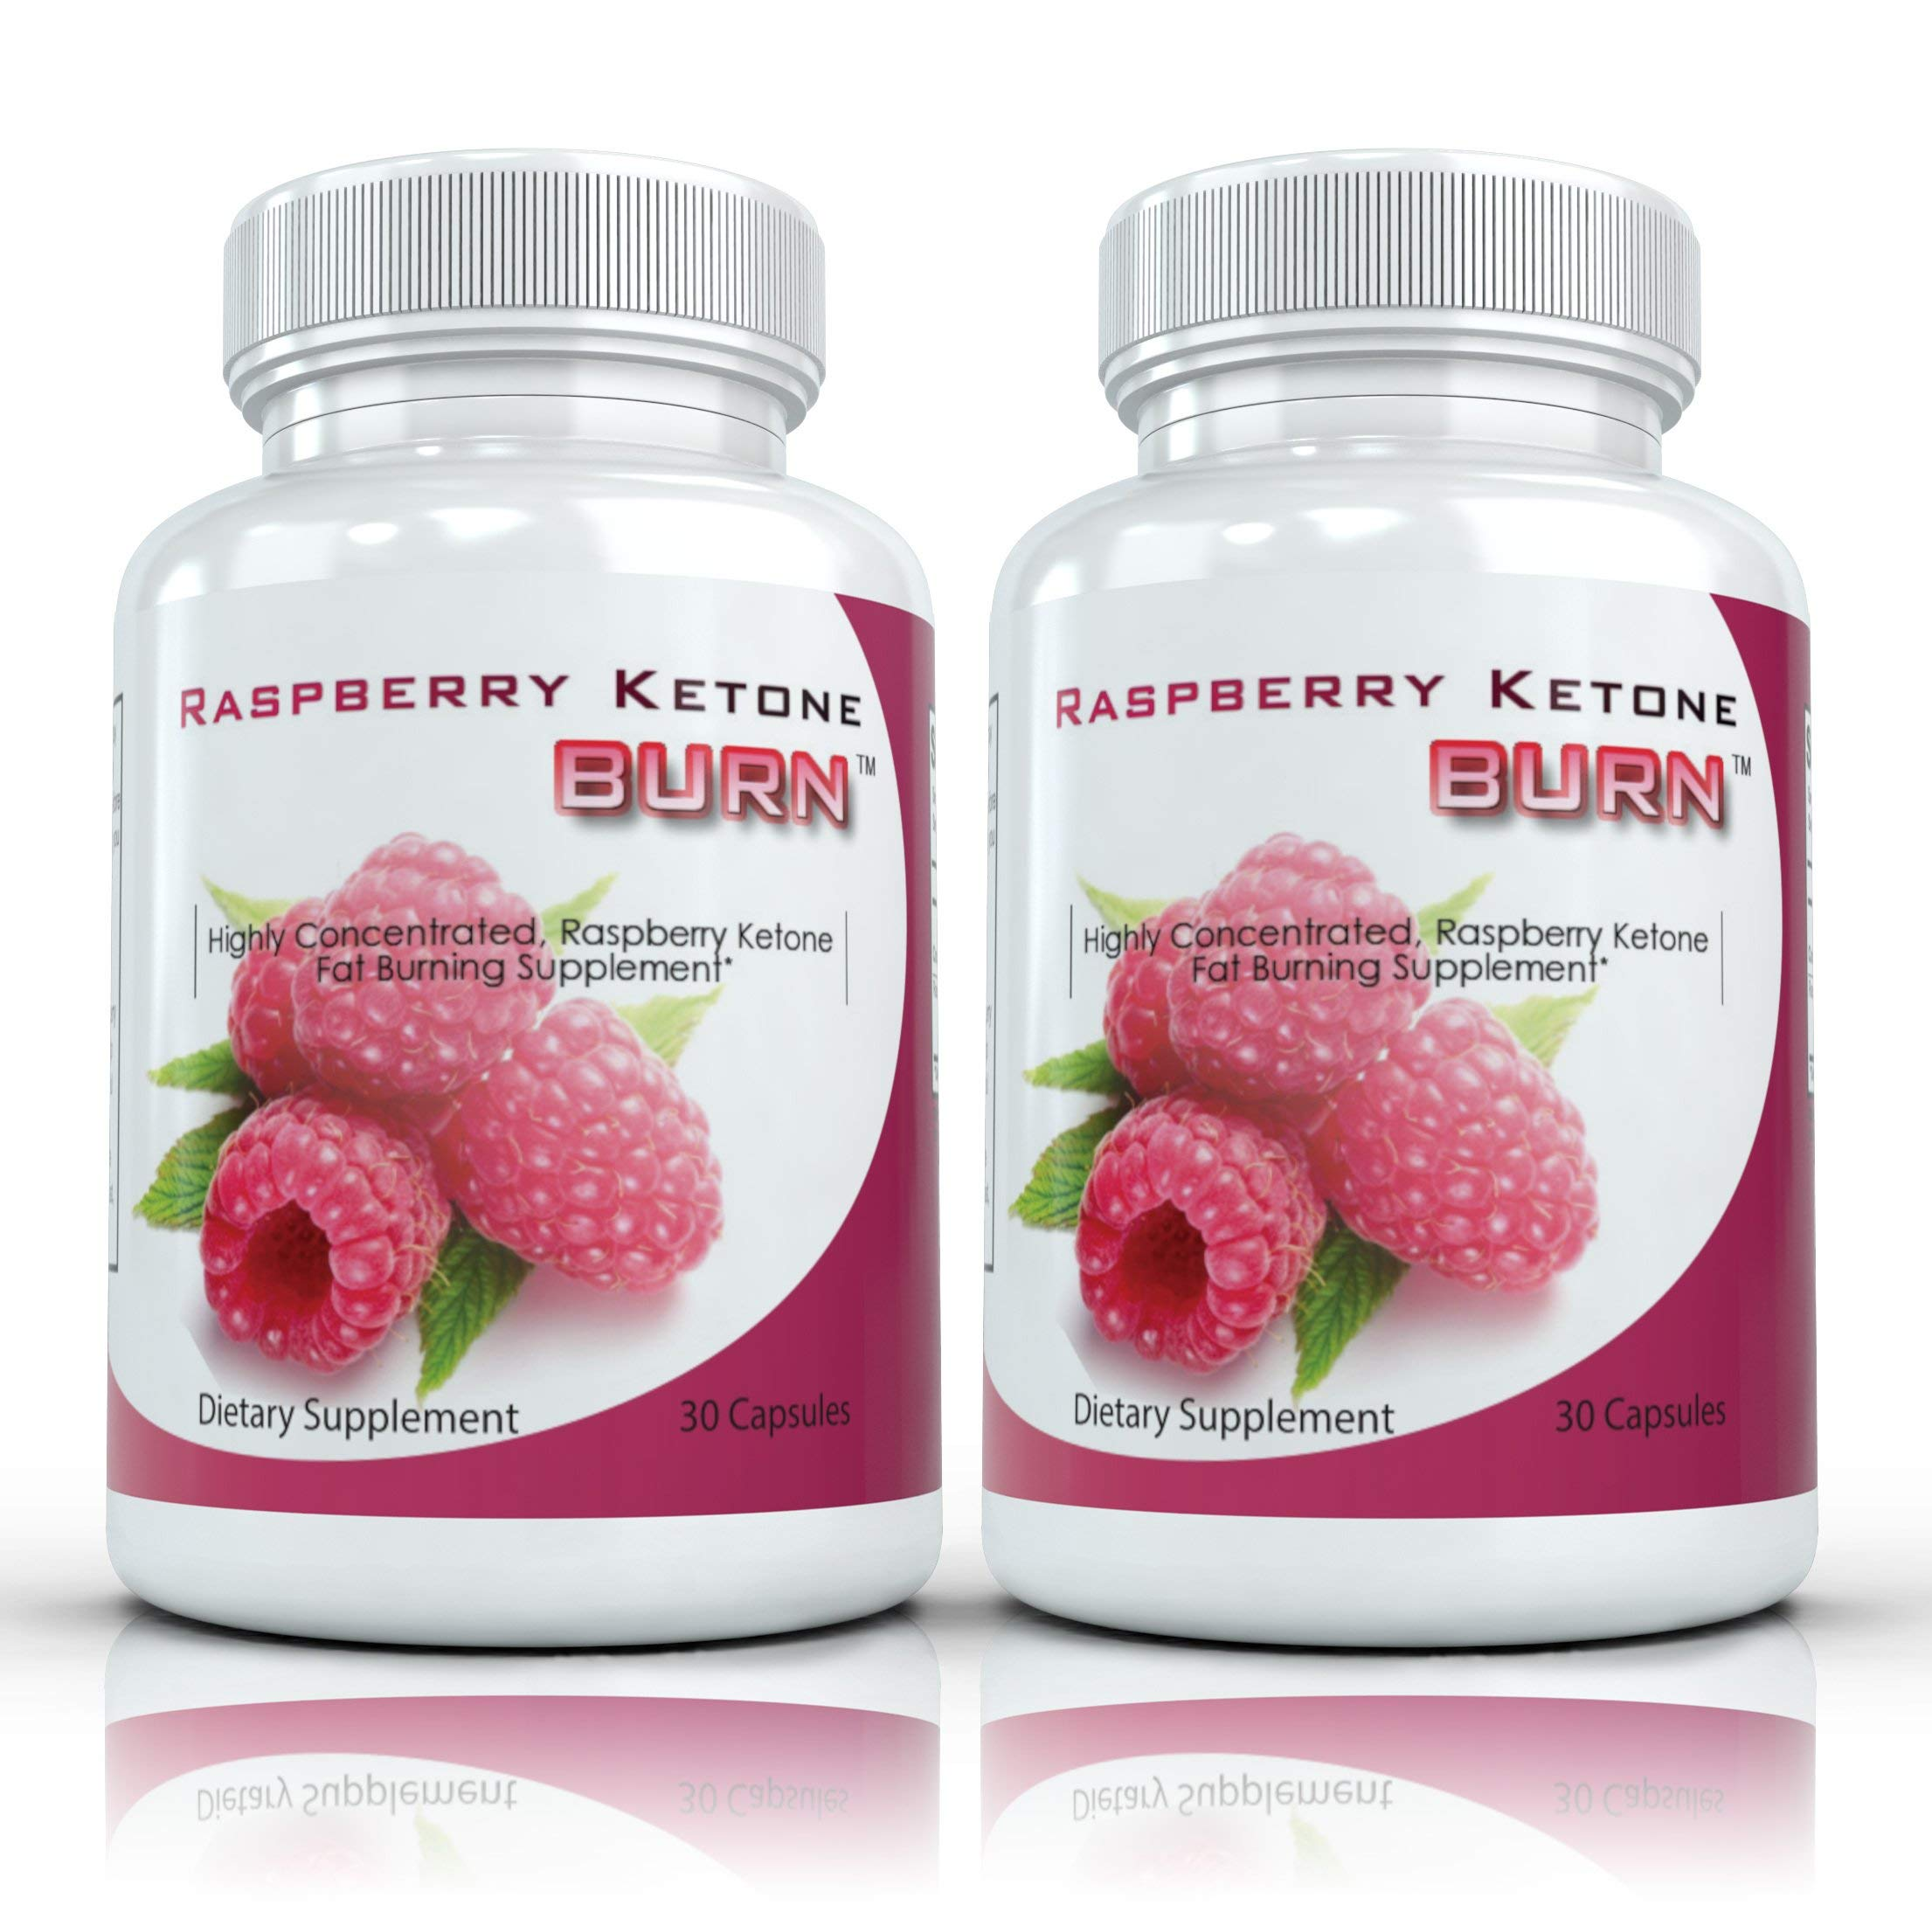 Raspberry Ketones Page 10 Blowout Sale Save Up To 66